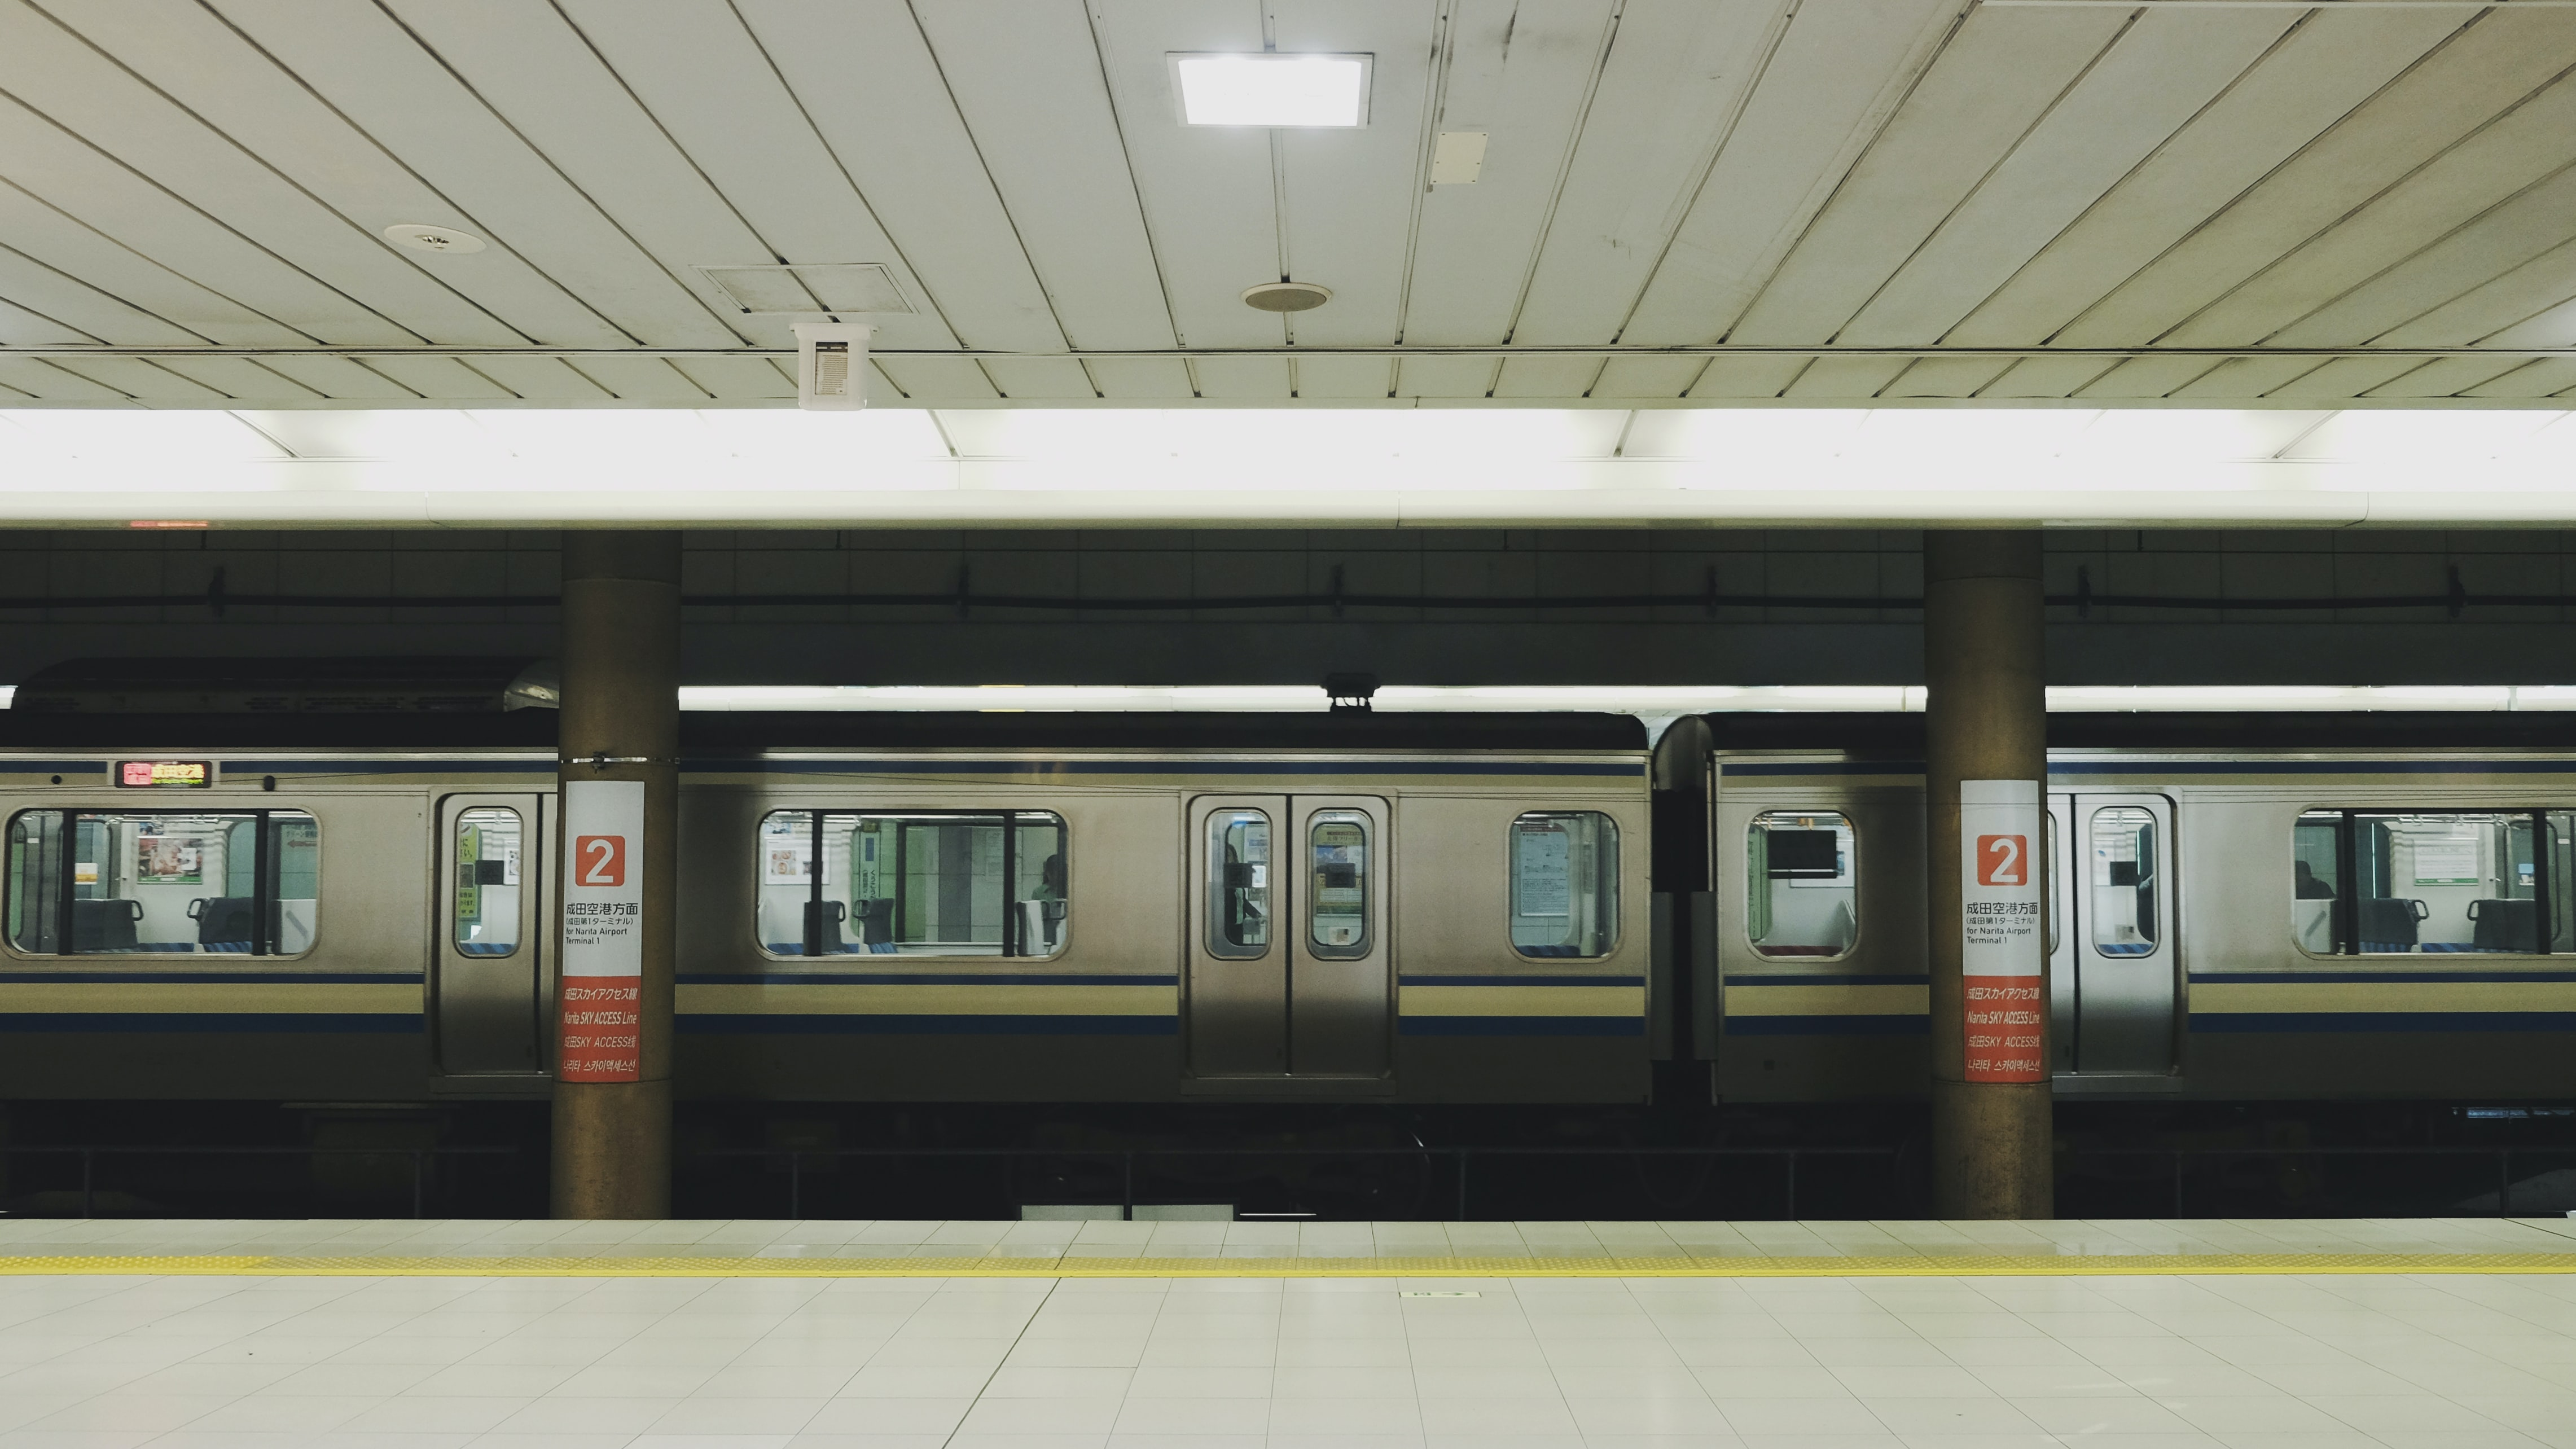 Tokyo train waits at the station until before departing